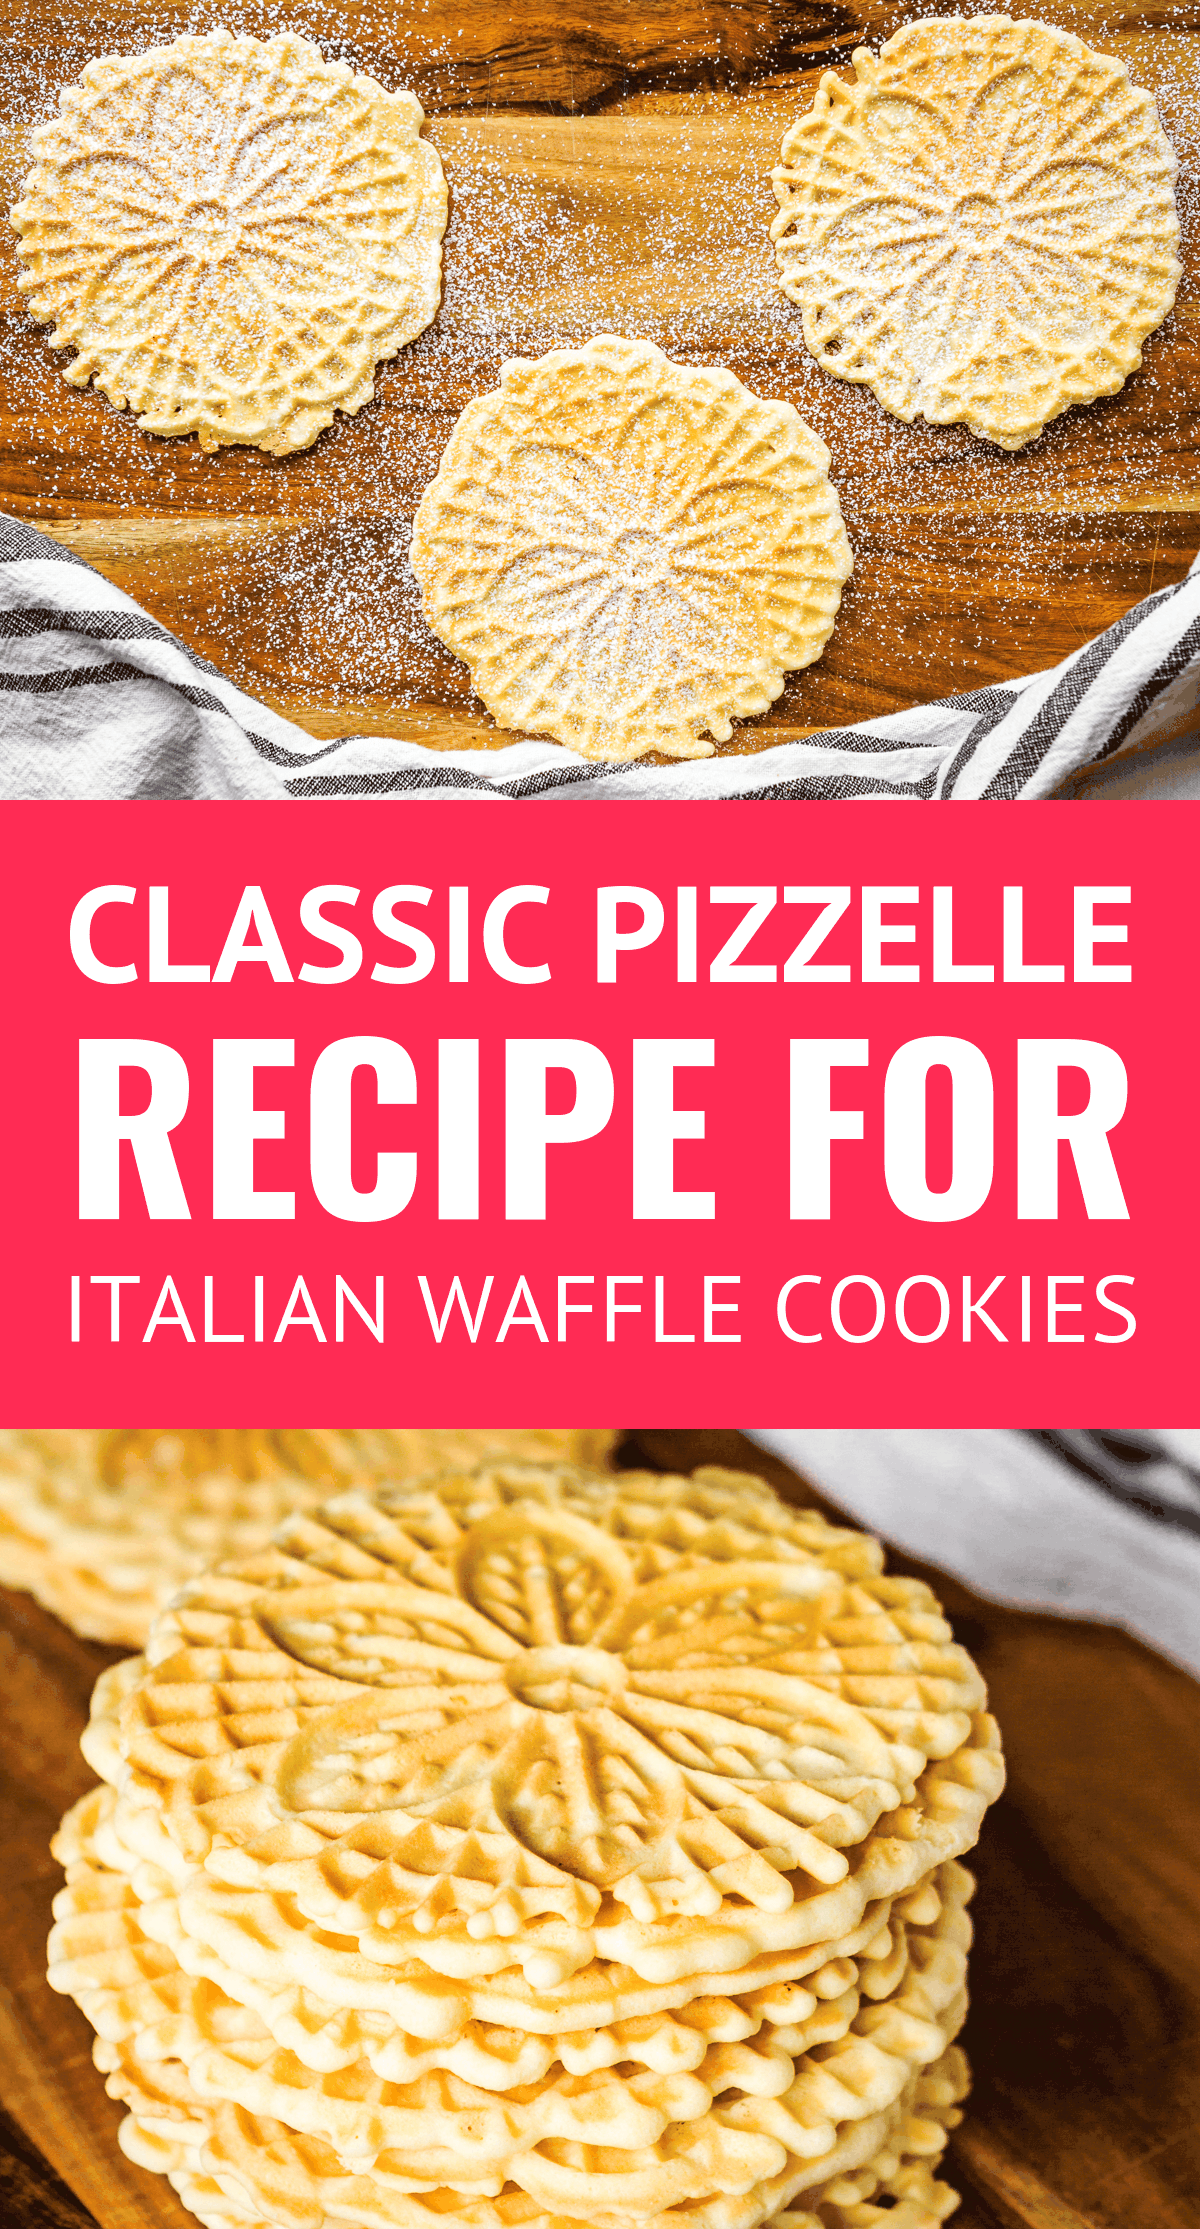 Easy Classic Pizzelle Recipe For Italian Waffle Cookies  These light and crispy vanilla pizzelle cookies are a Christmas Eve tradition in our home Includes tips for how t...